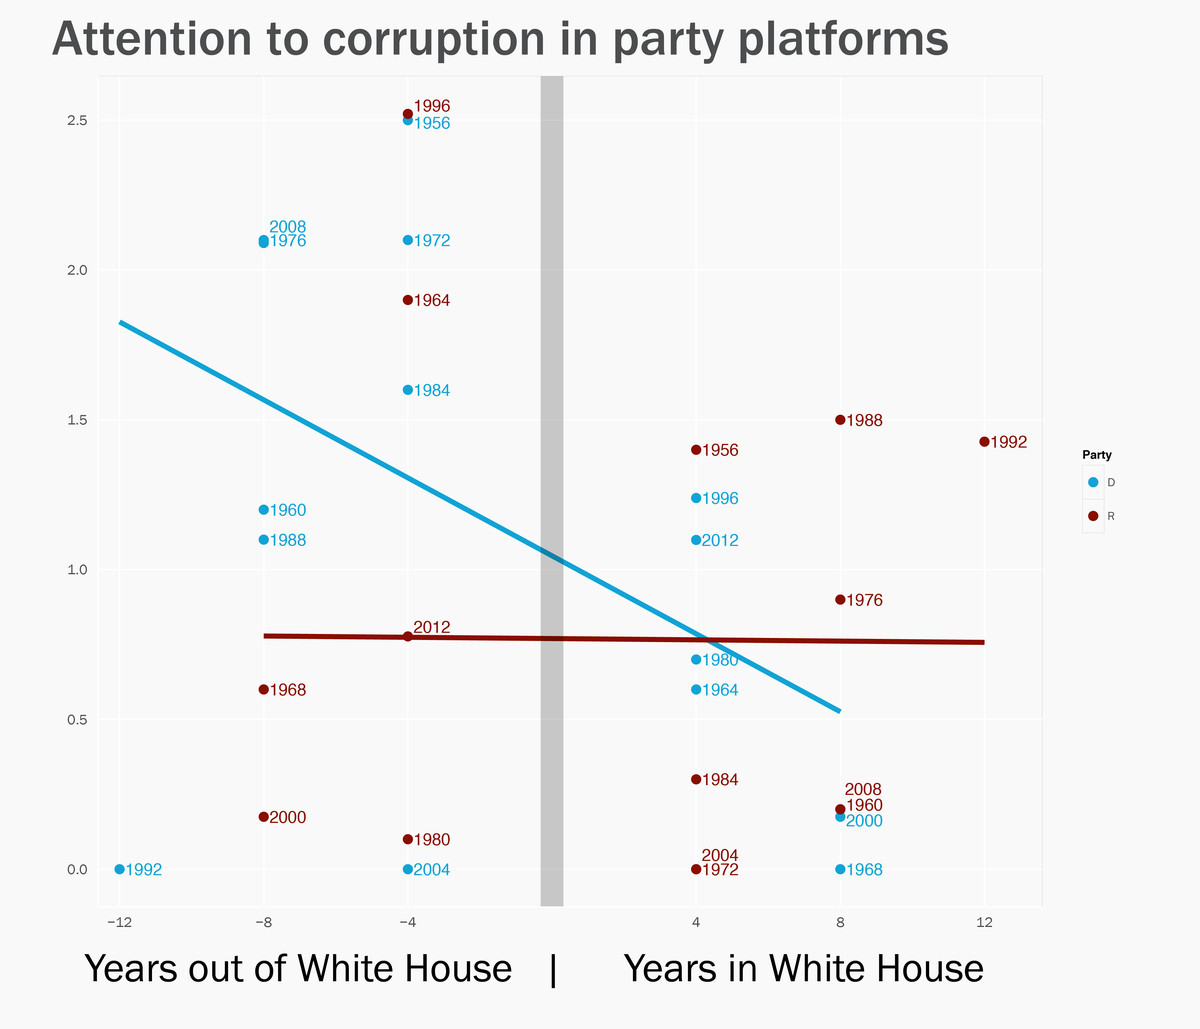 Attention to corruption in party platforms